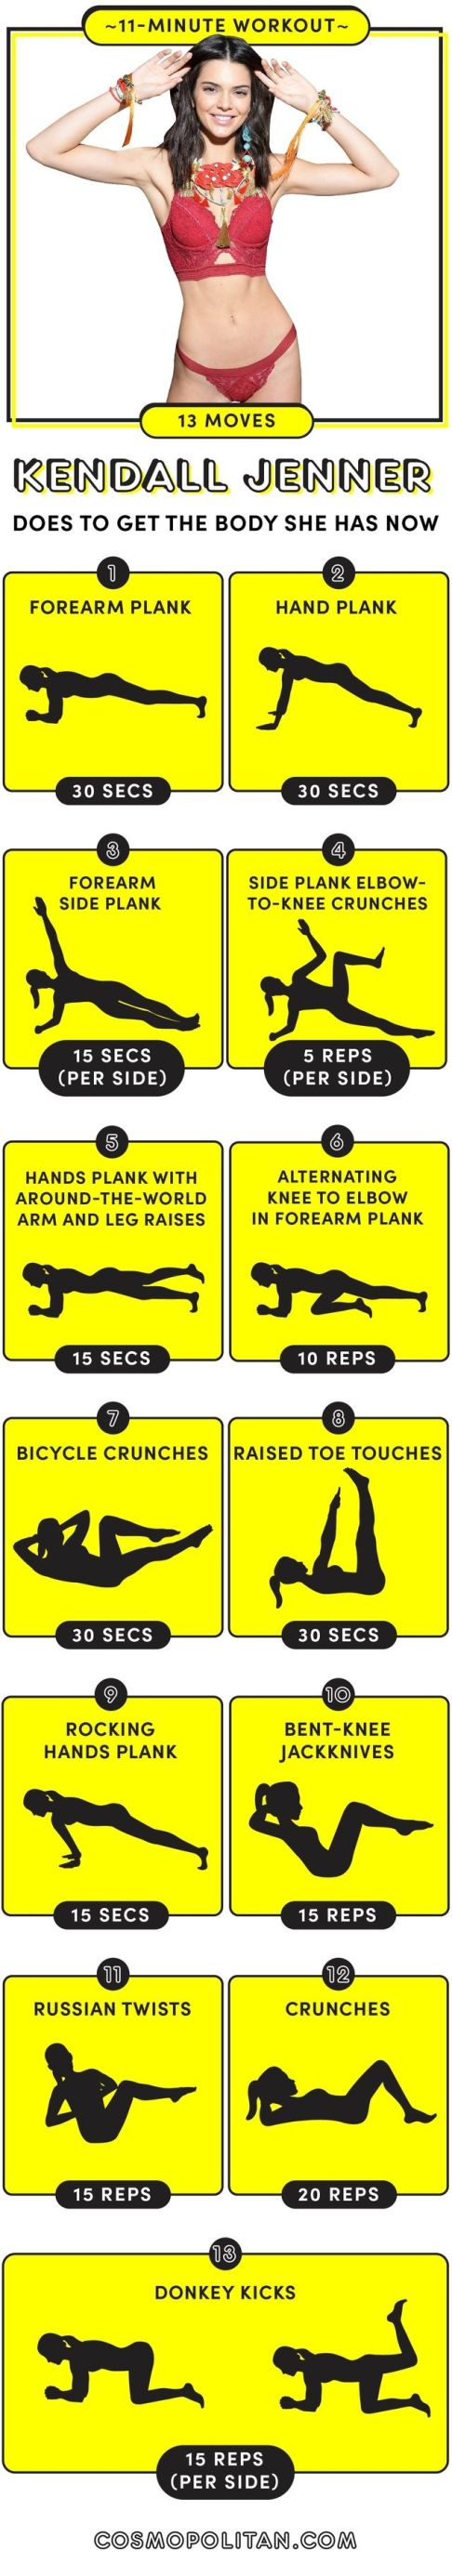 kendall-exercises-01-3-1490901682